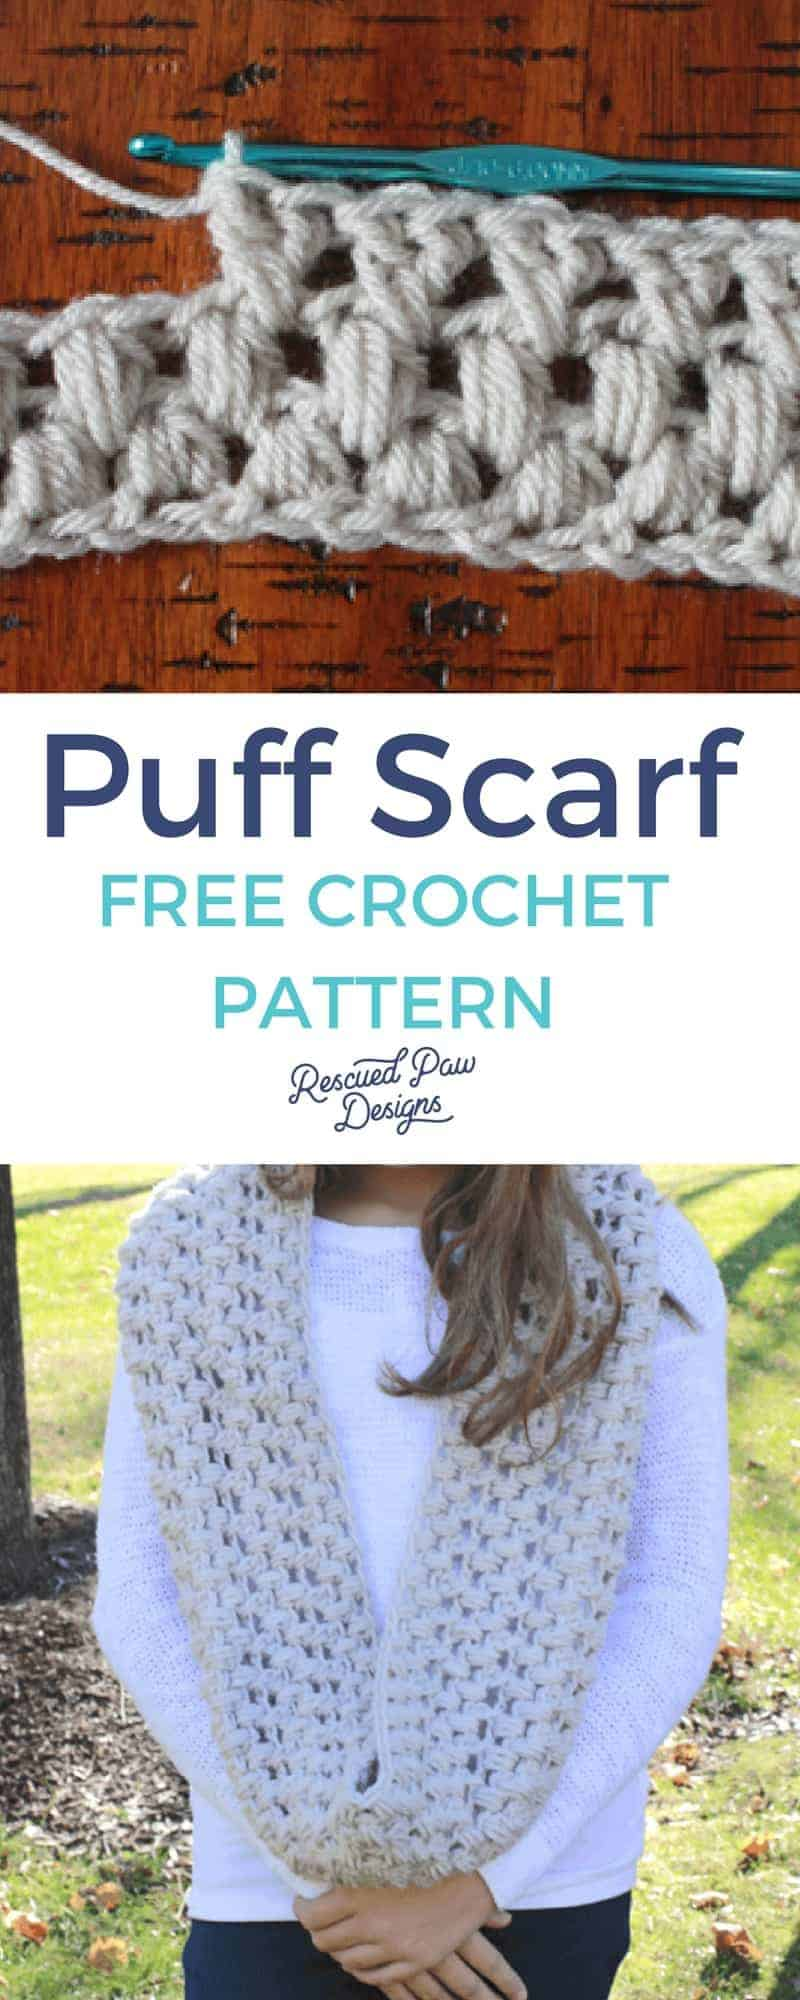 Crochet puff stitch pattern for a Scarf! Crochet this Free scarf using the puff stitch today from Rescued Paw Designs